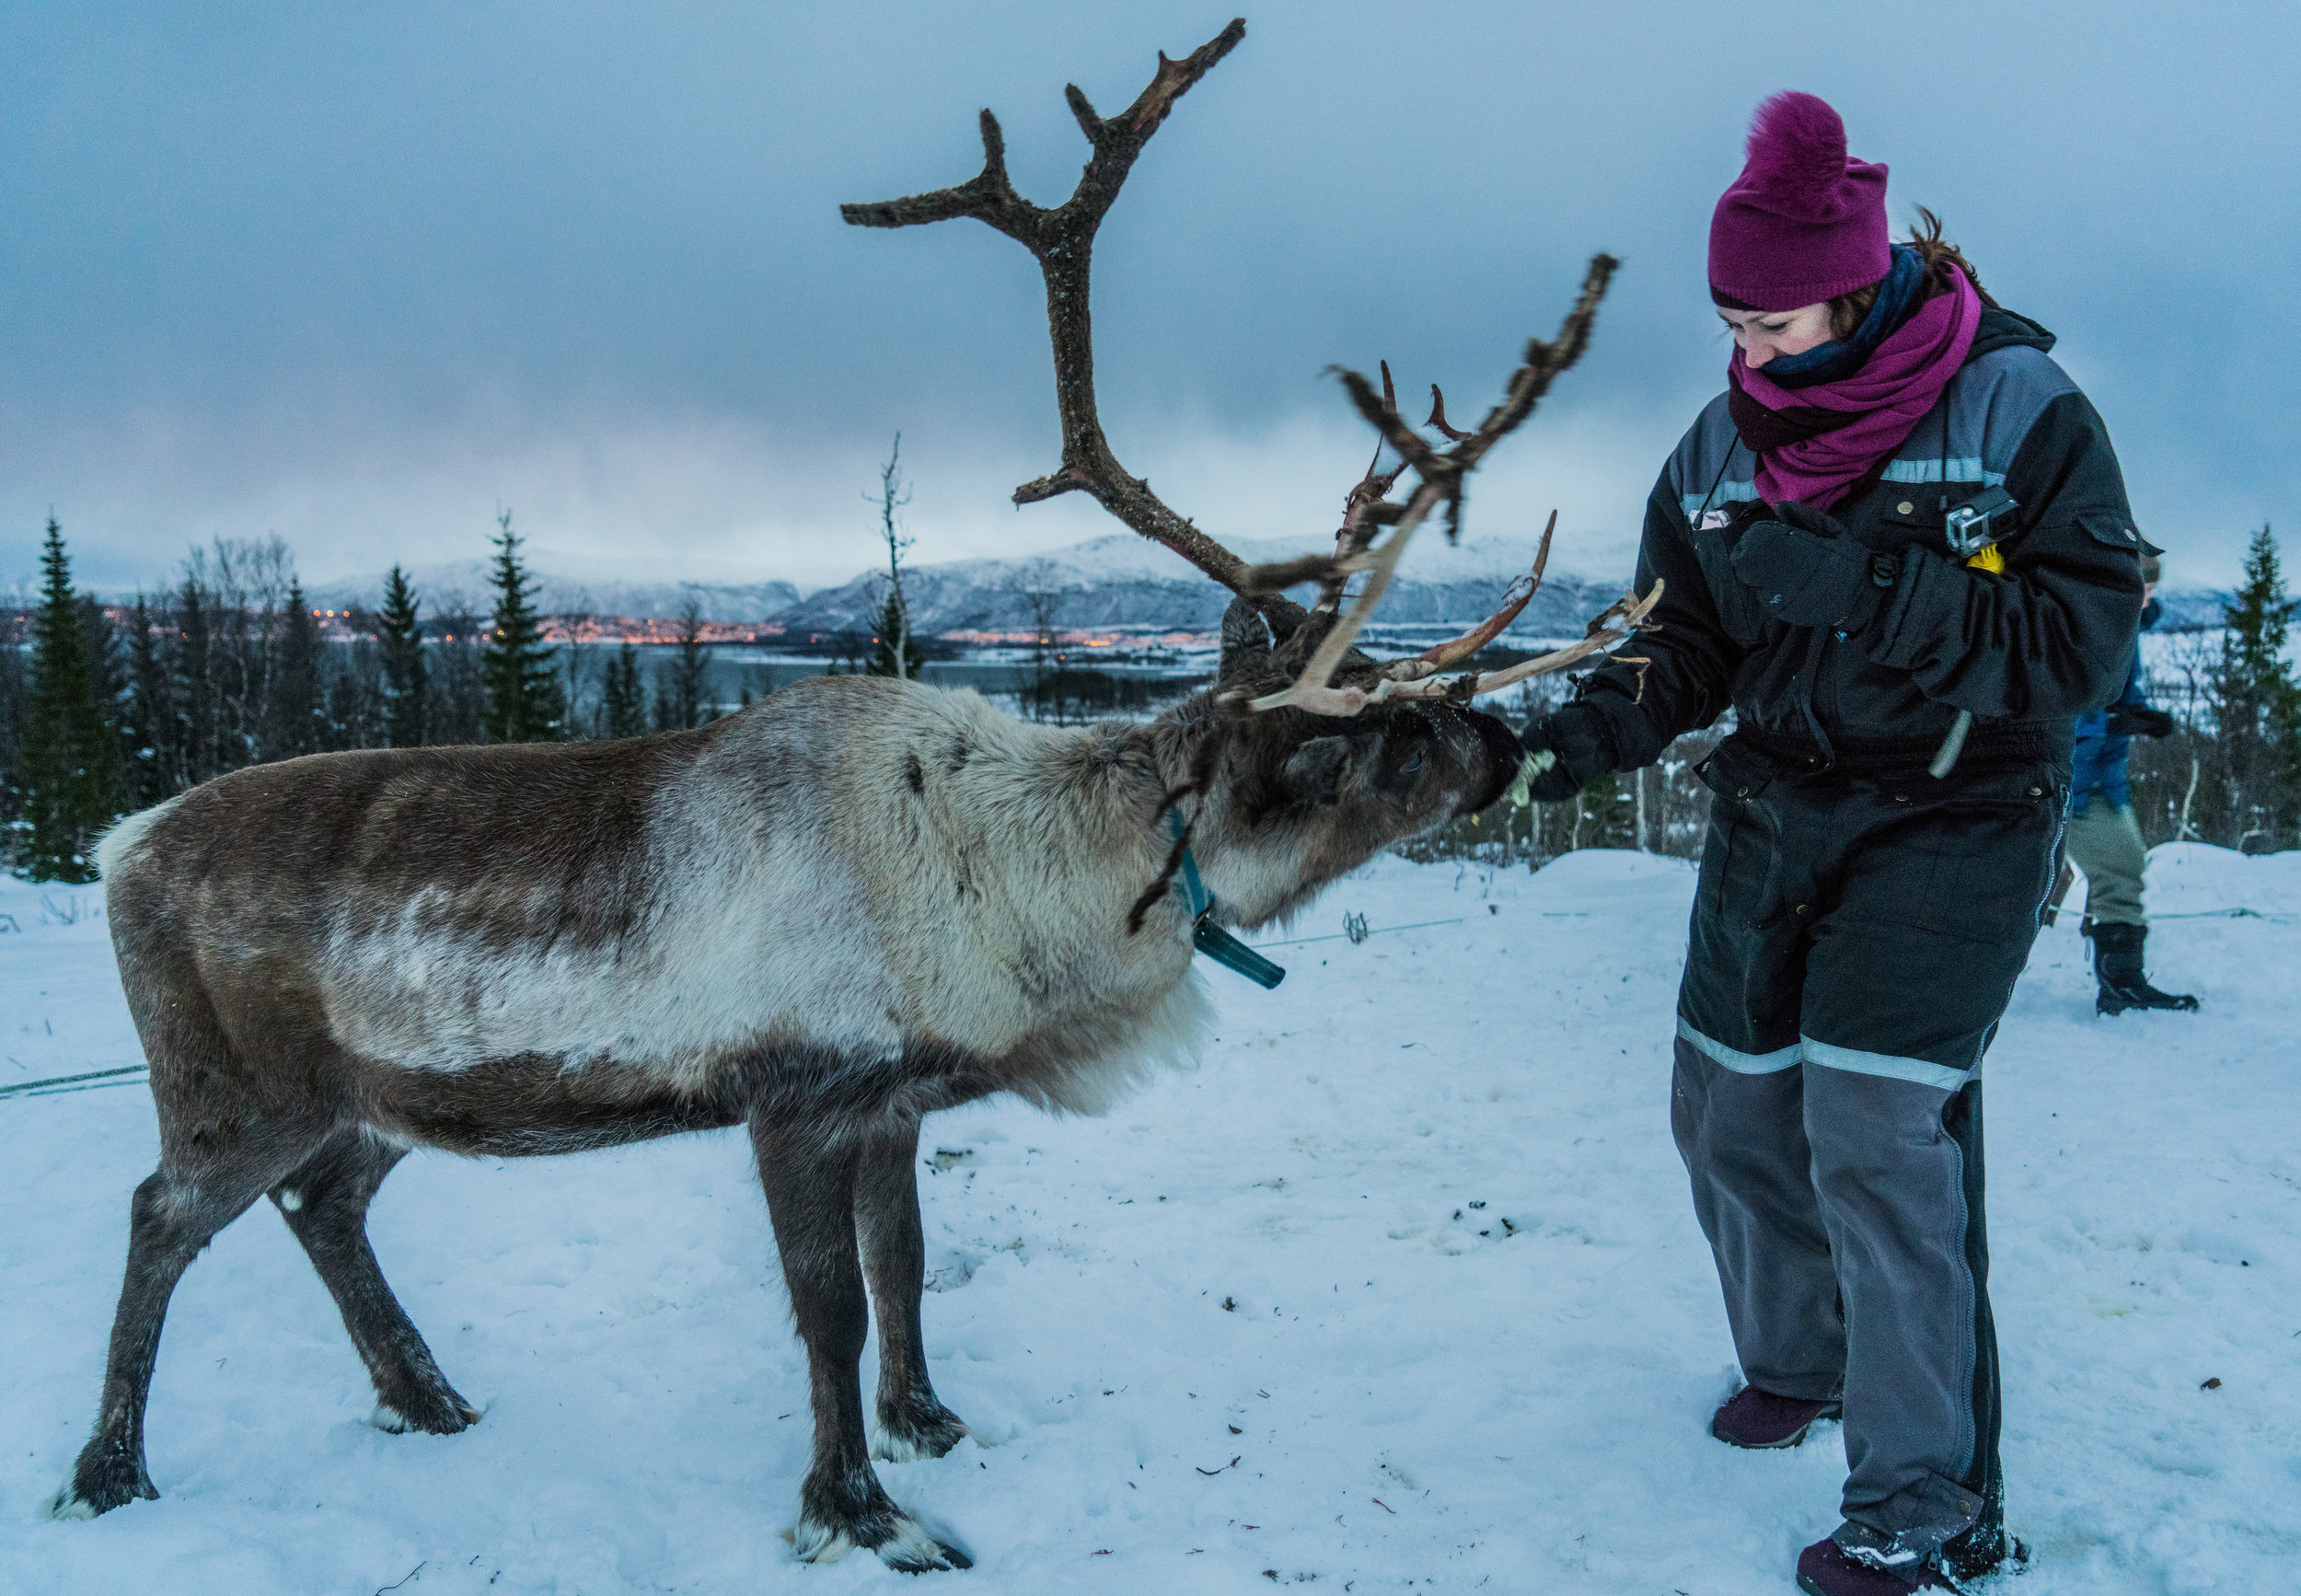 Reindeer Rides - We fed them. We pet them. They gave us a ride in a sleigh!